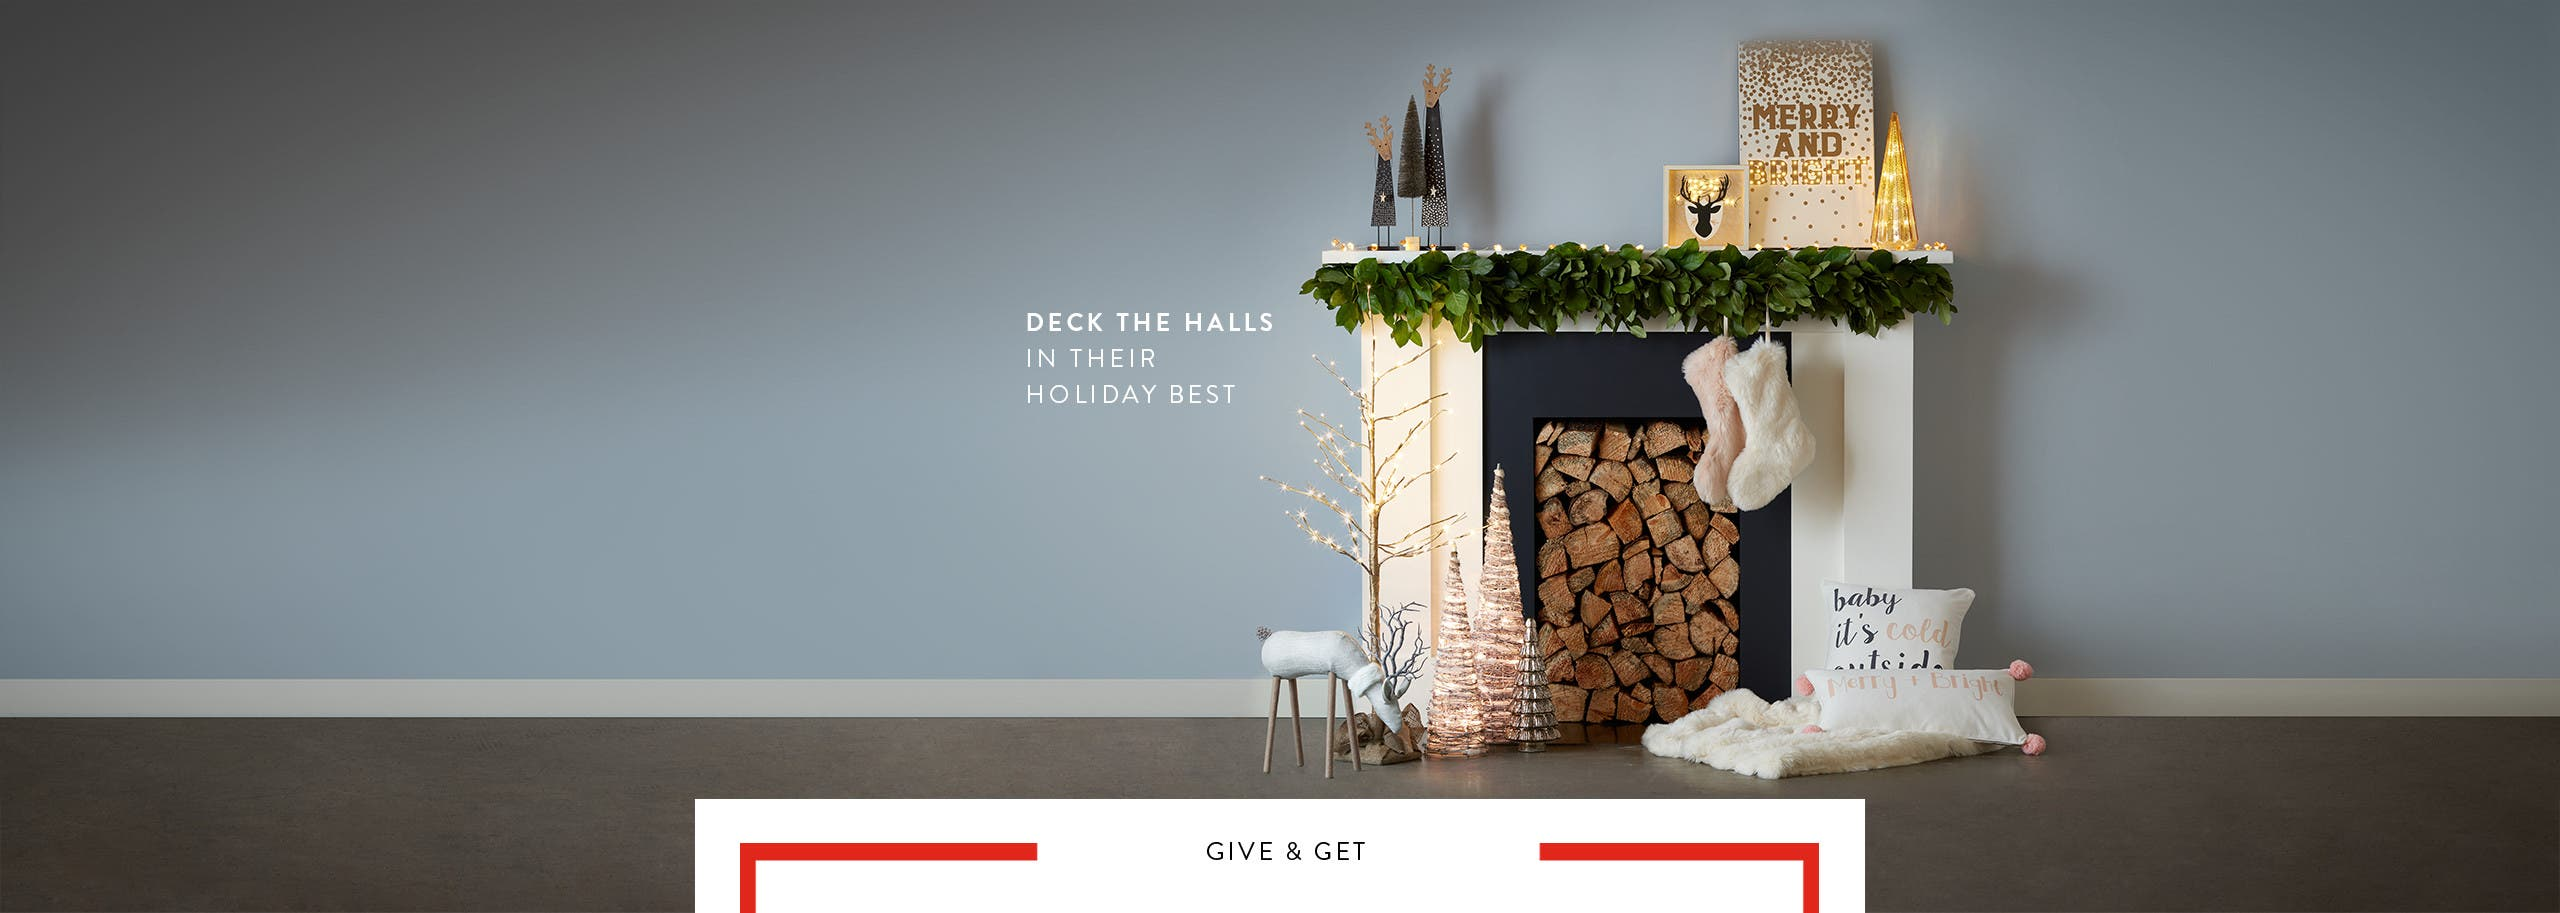 Deck the halls in their holiday best.